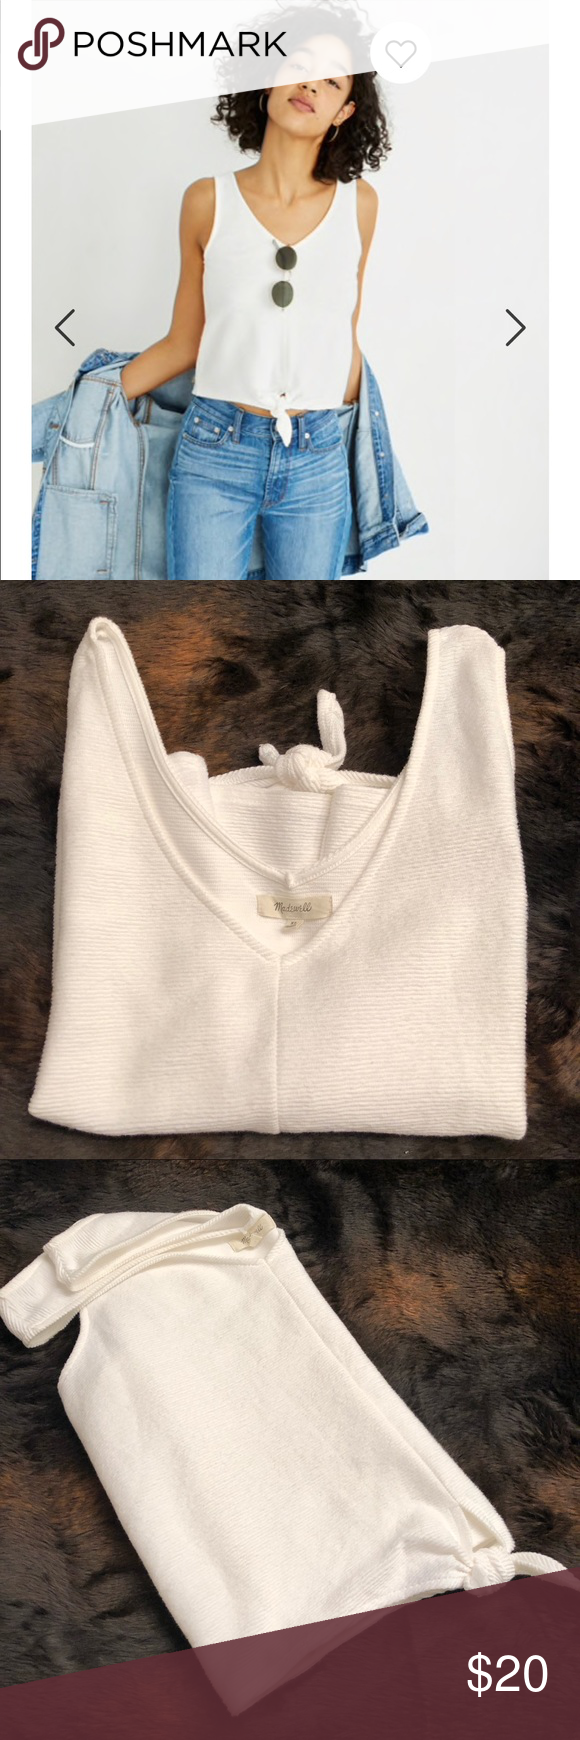 d3bb356586f Madewell Texture & Thread Tie Front Tank Top This top is perfect! It is  soft against the skin and solid white! It is composed of Cotton and easy to  pair!